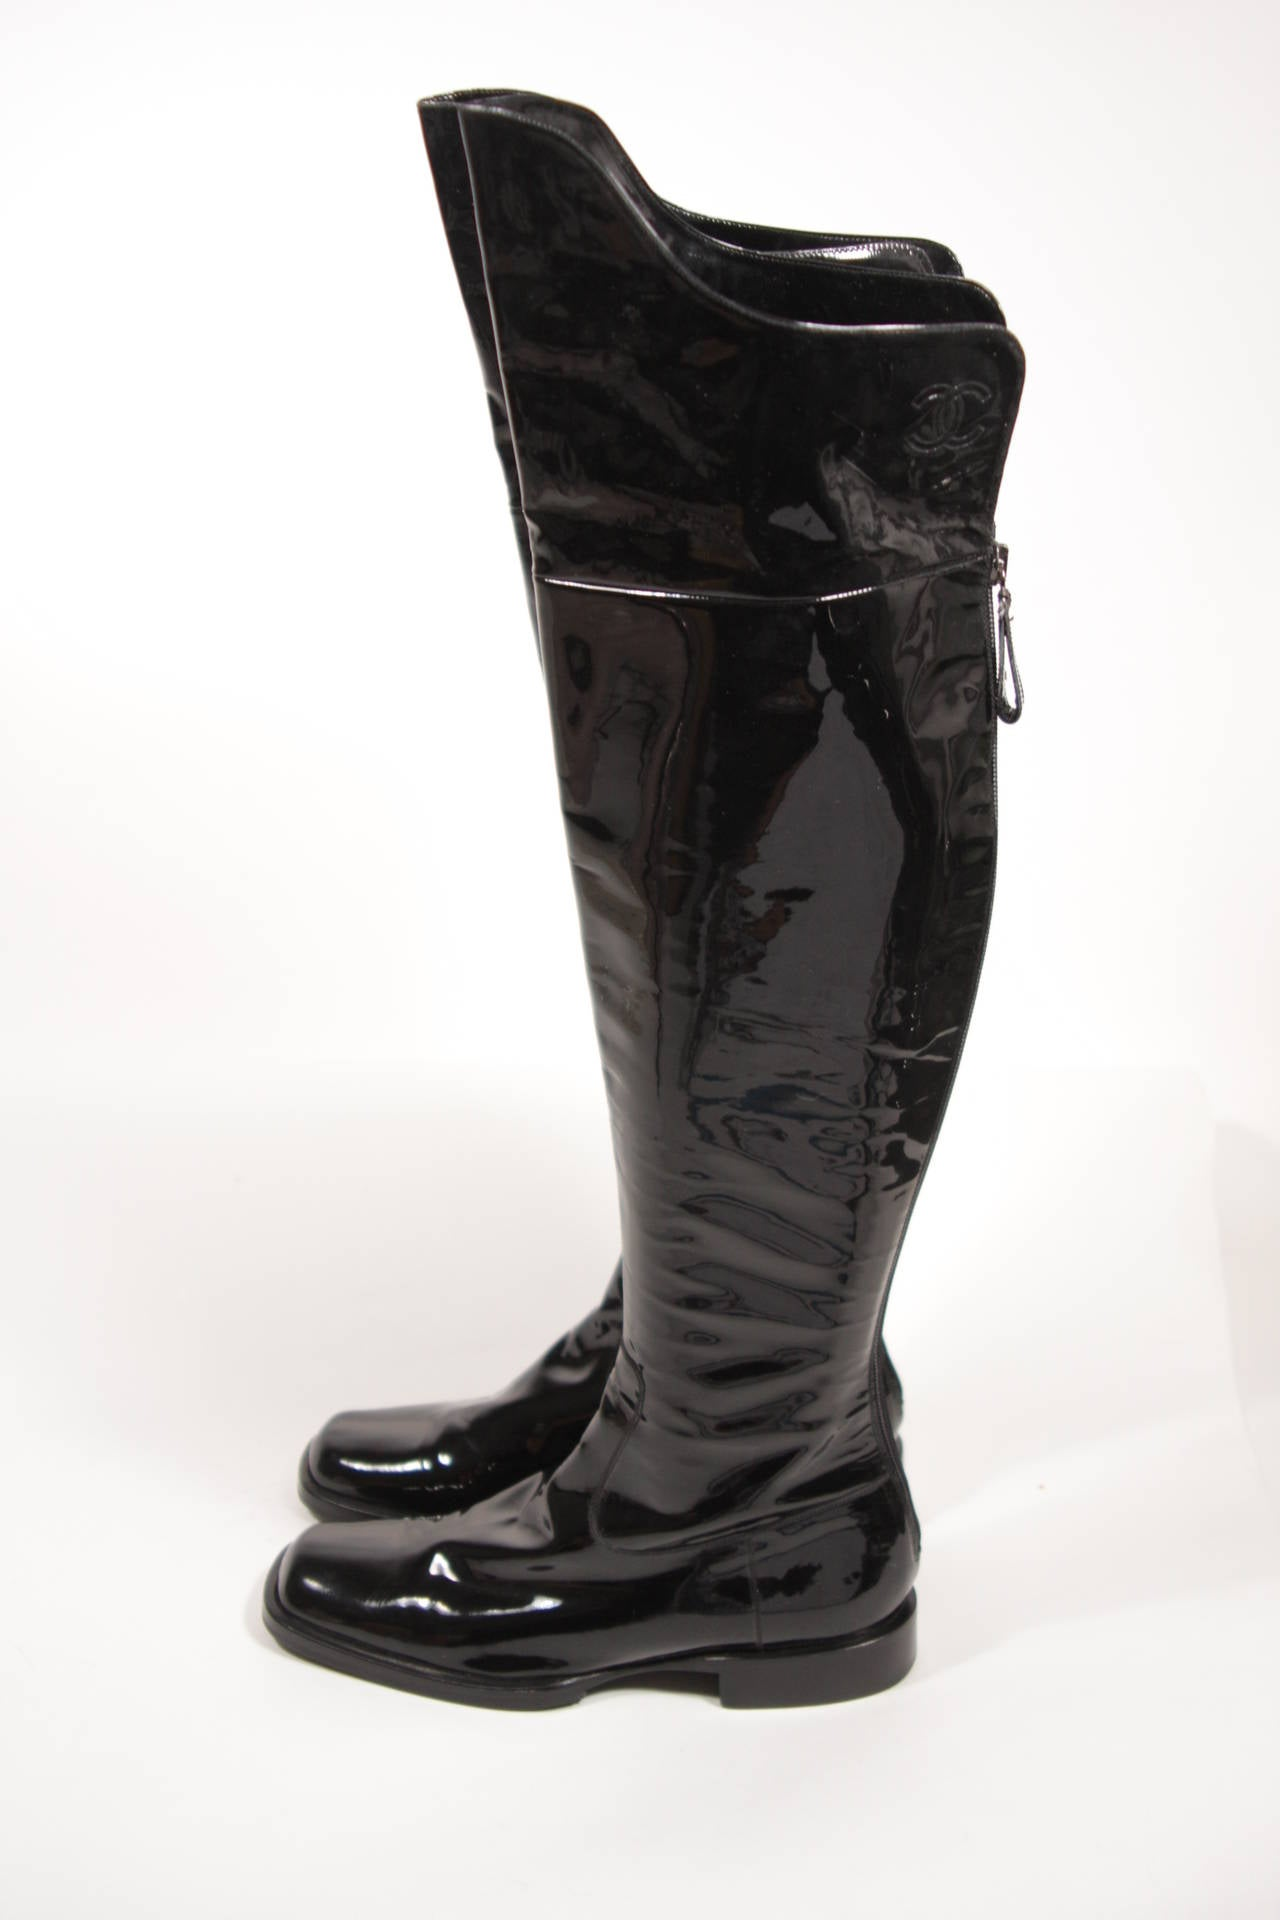 chanel black patent leather boots size 7 5 nwb at 1stdibs